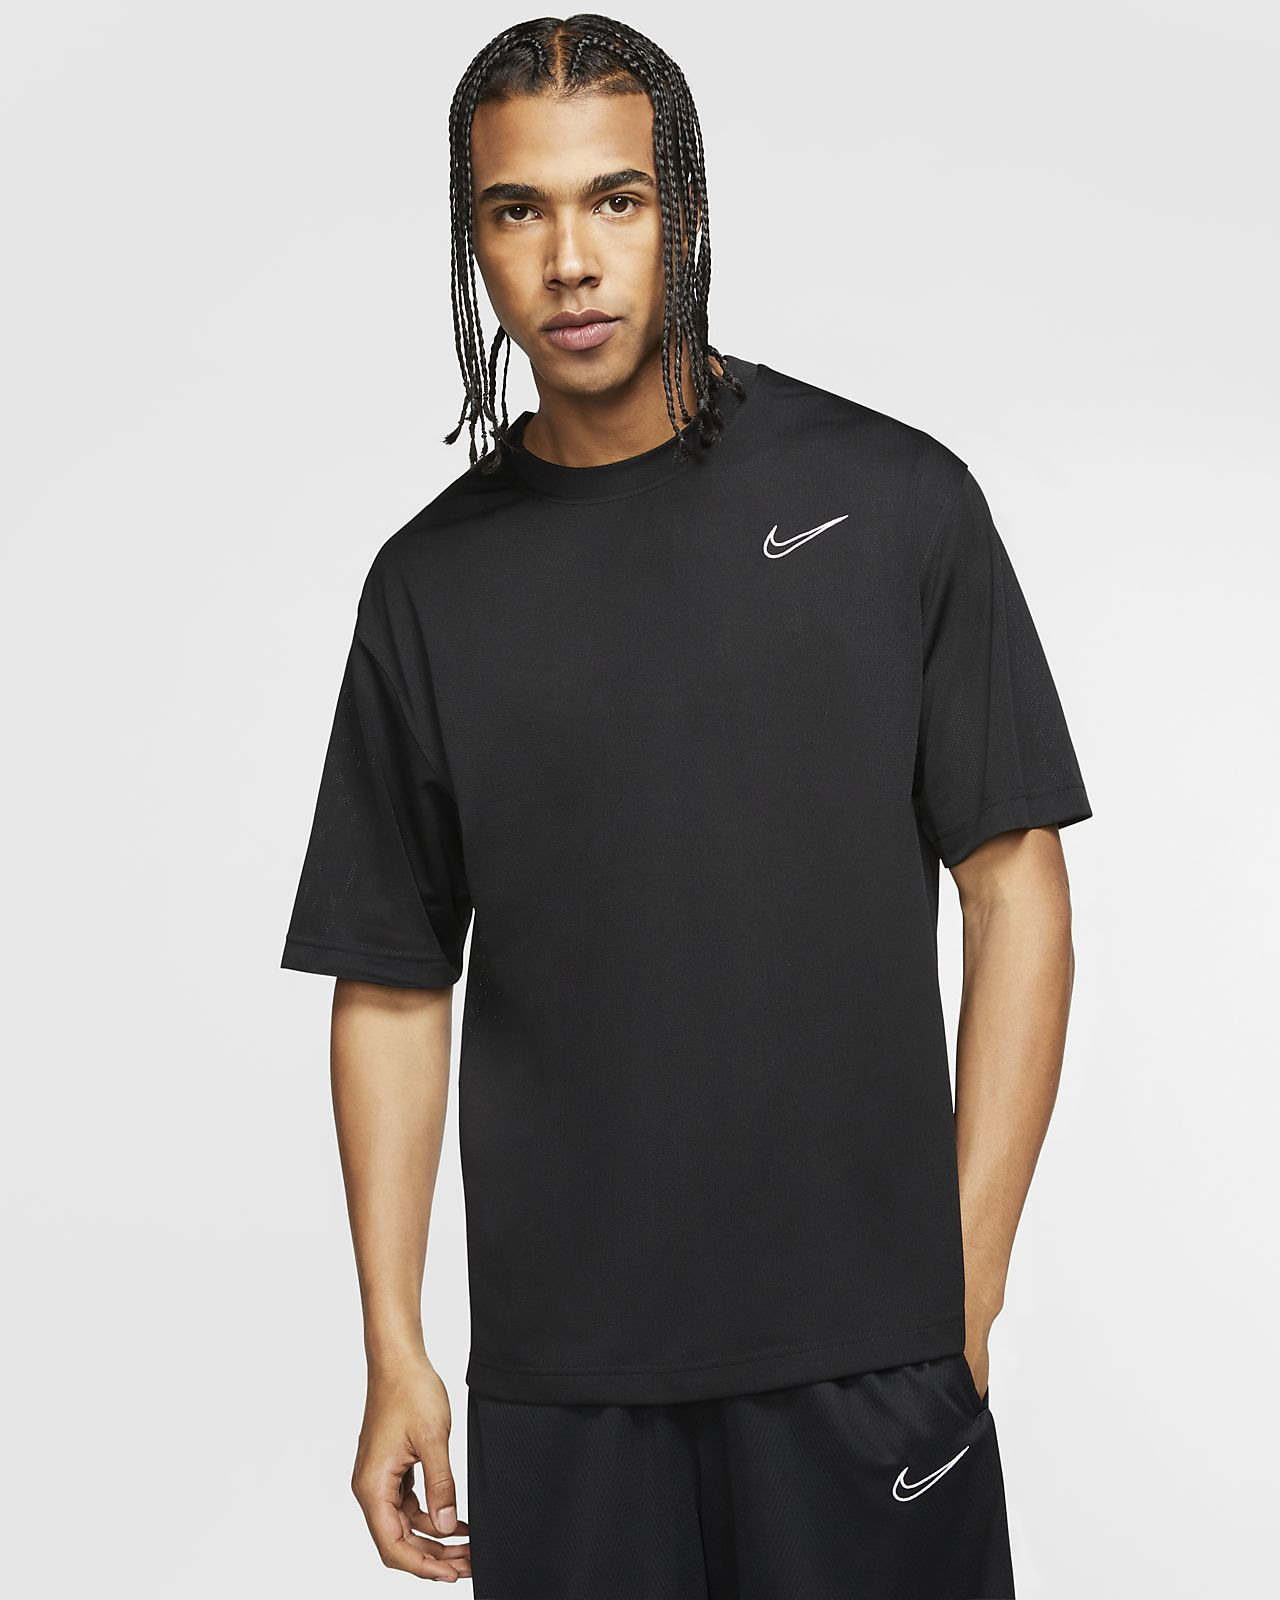 Nike Dri-FIT Classic Men's Basketball Top